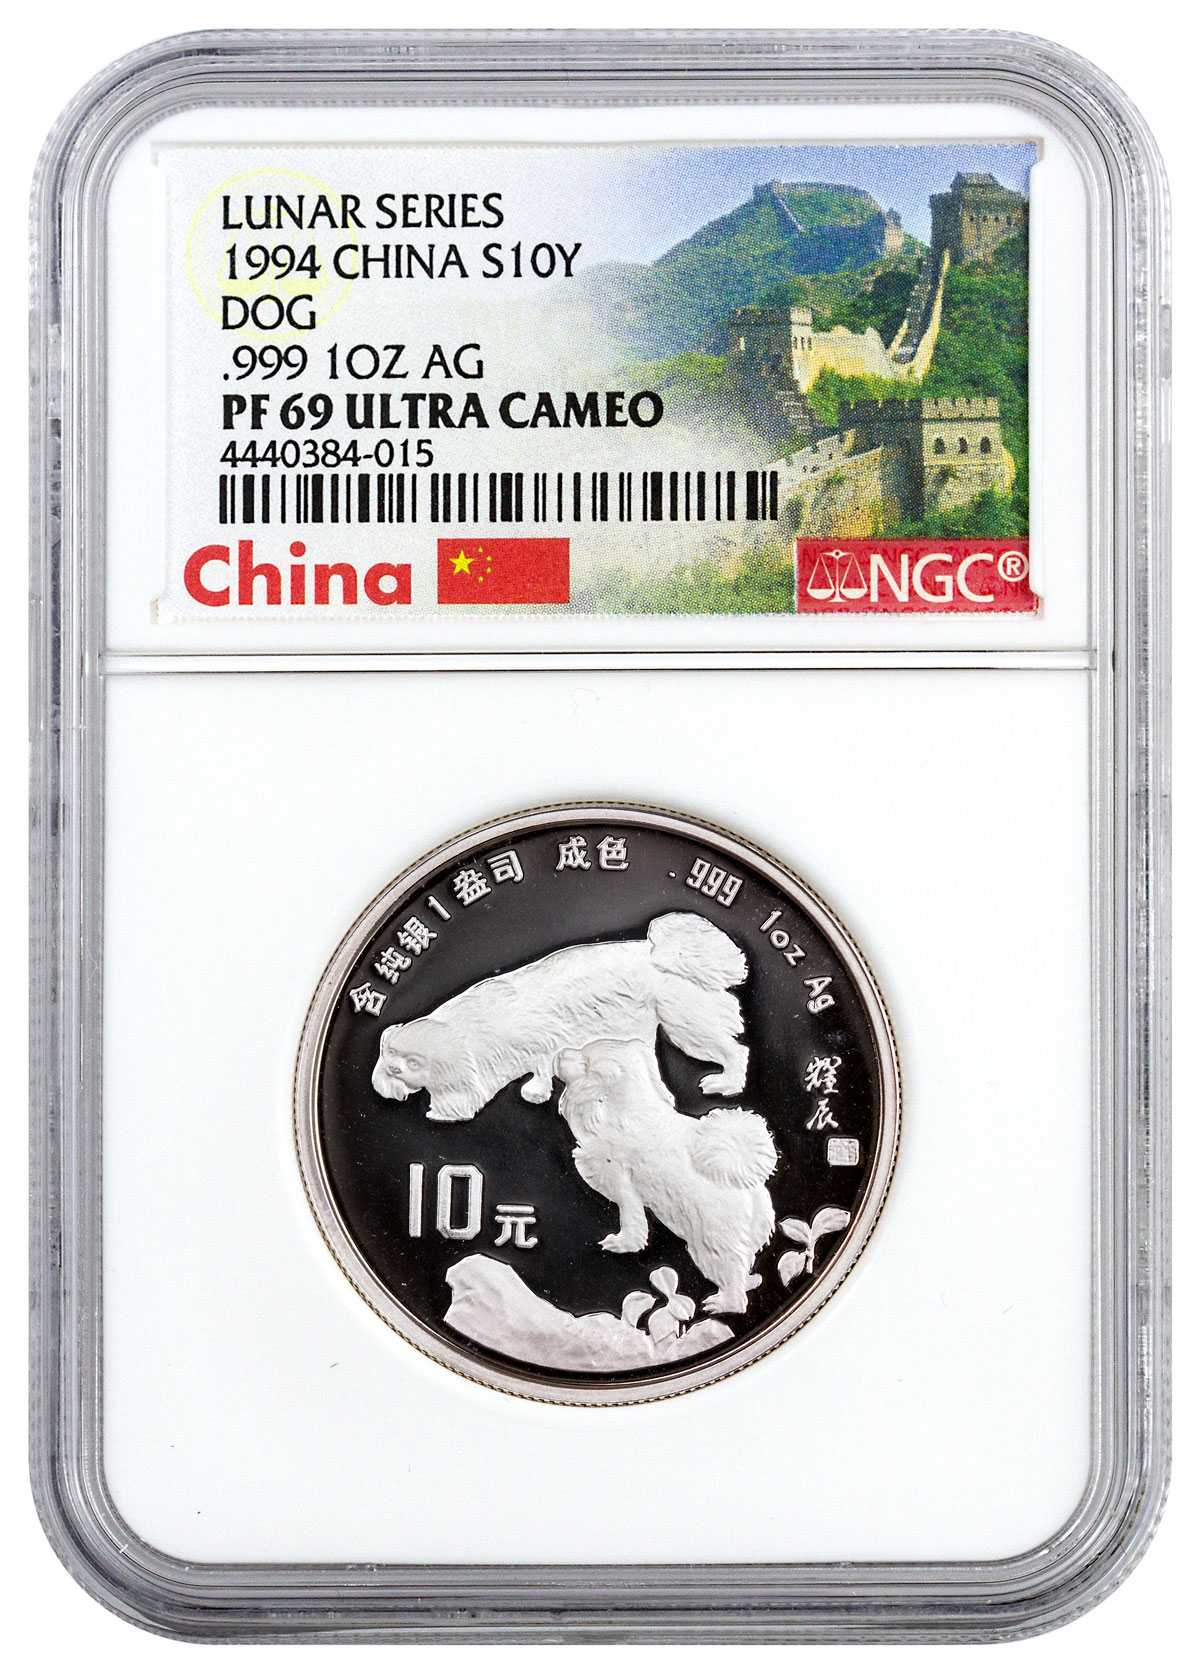 1994 China Year of the Dog 1 oz Silver Lunar Proof ¥10 Coin NGC PF69 UC (Exclusive Great Wall Label)